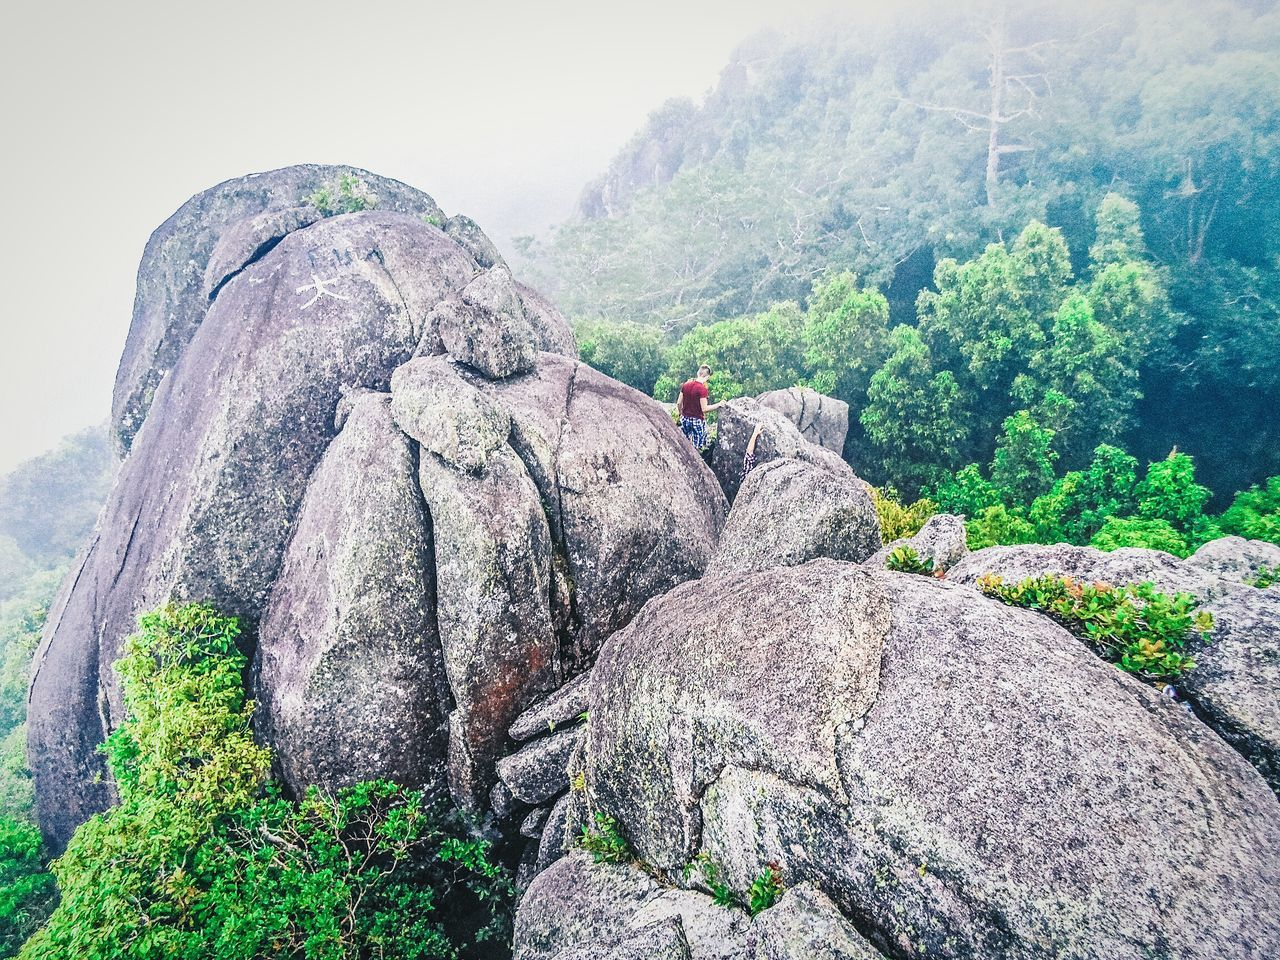 Climbing in the clouds Seychelles Tree Outdoors Beautiful Landscape Travel Travelphotography Wanderlust Island Amazing Amazing View Islandlife Beautifuldestinations Travel Destinations Mountain Explore Beauty In Nature Clouds Nature_collection Nature Landscape_Collection Vacations EyeEm Best Shots Tree Hiking